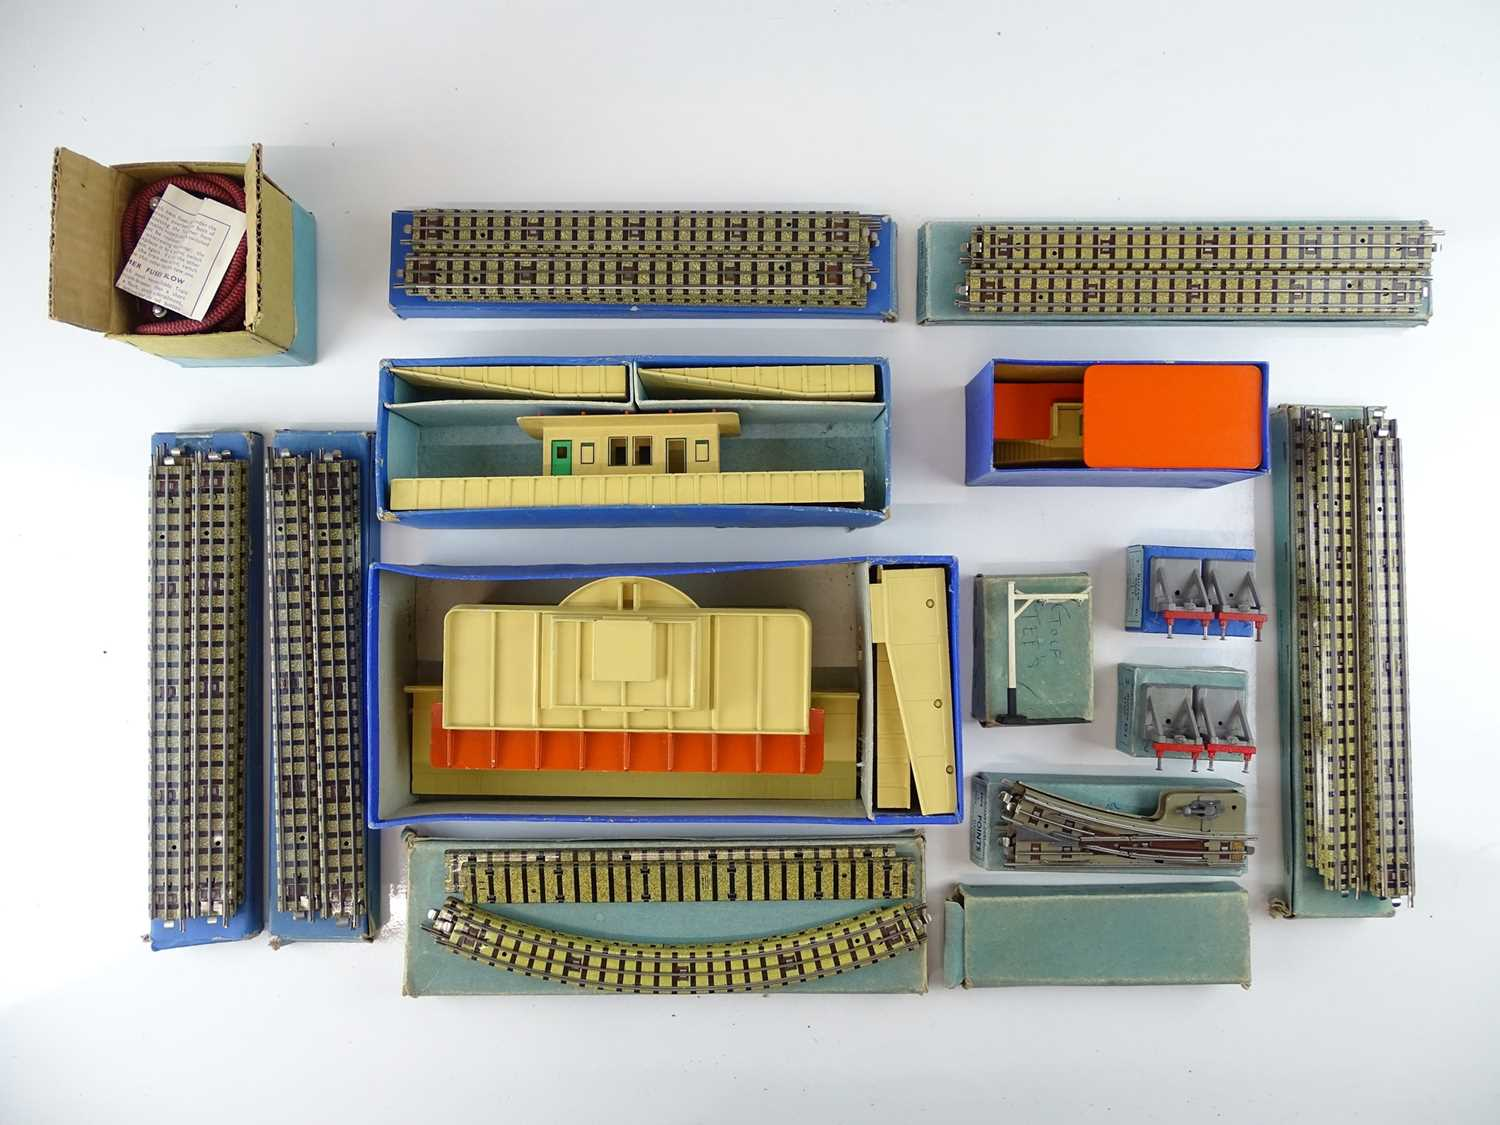 A large group of HORNBY DUBLO OO Gauge stations, track and accessories - G in G boxes (15) - Image 2 of 3